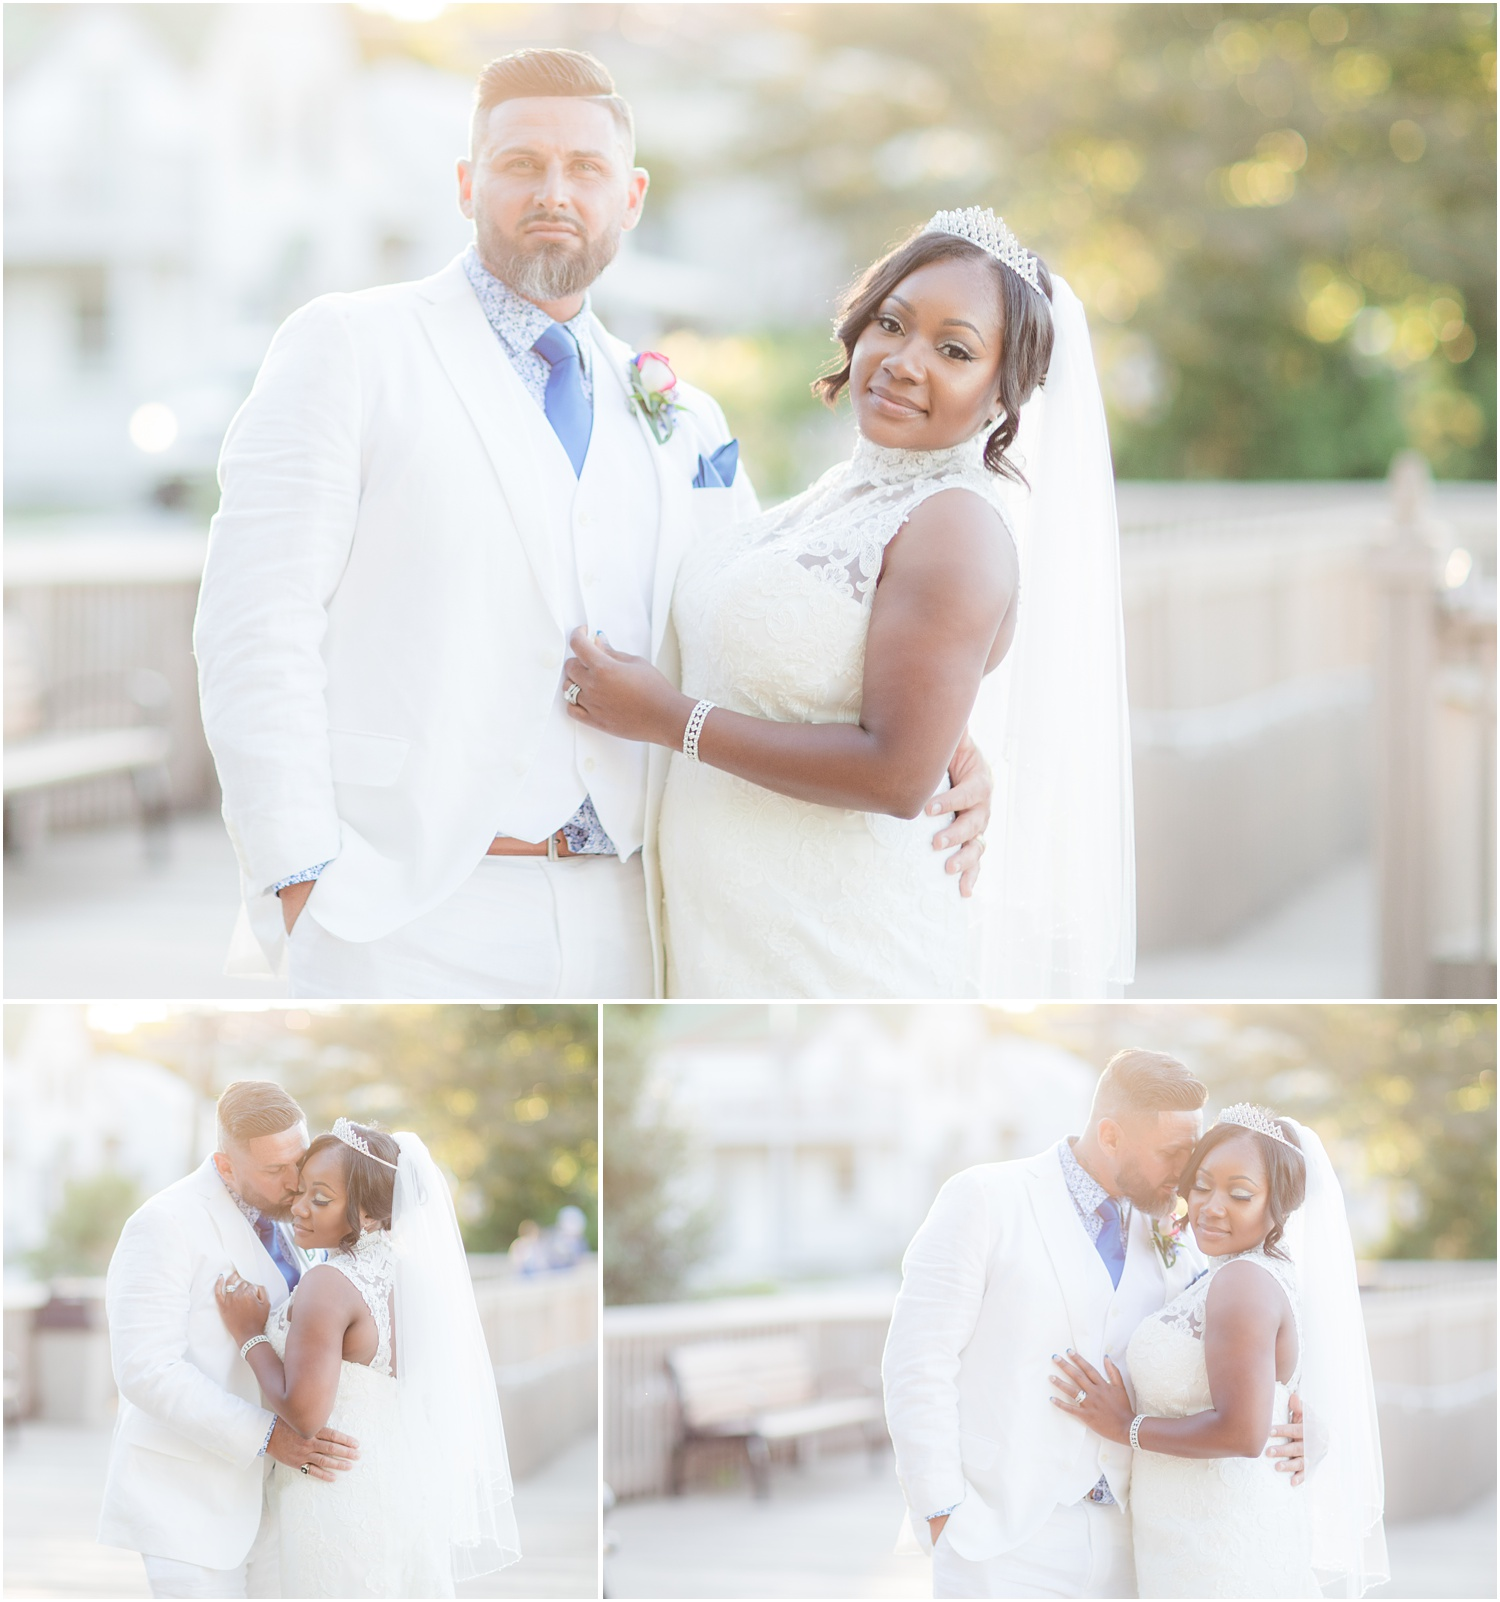 Romantic Bride and groom photos in Chesapeake City, MD.